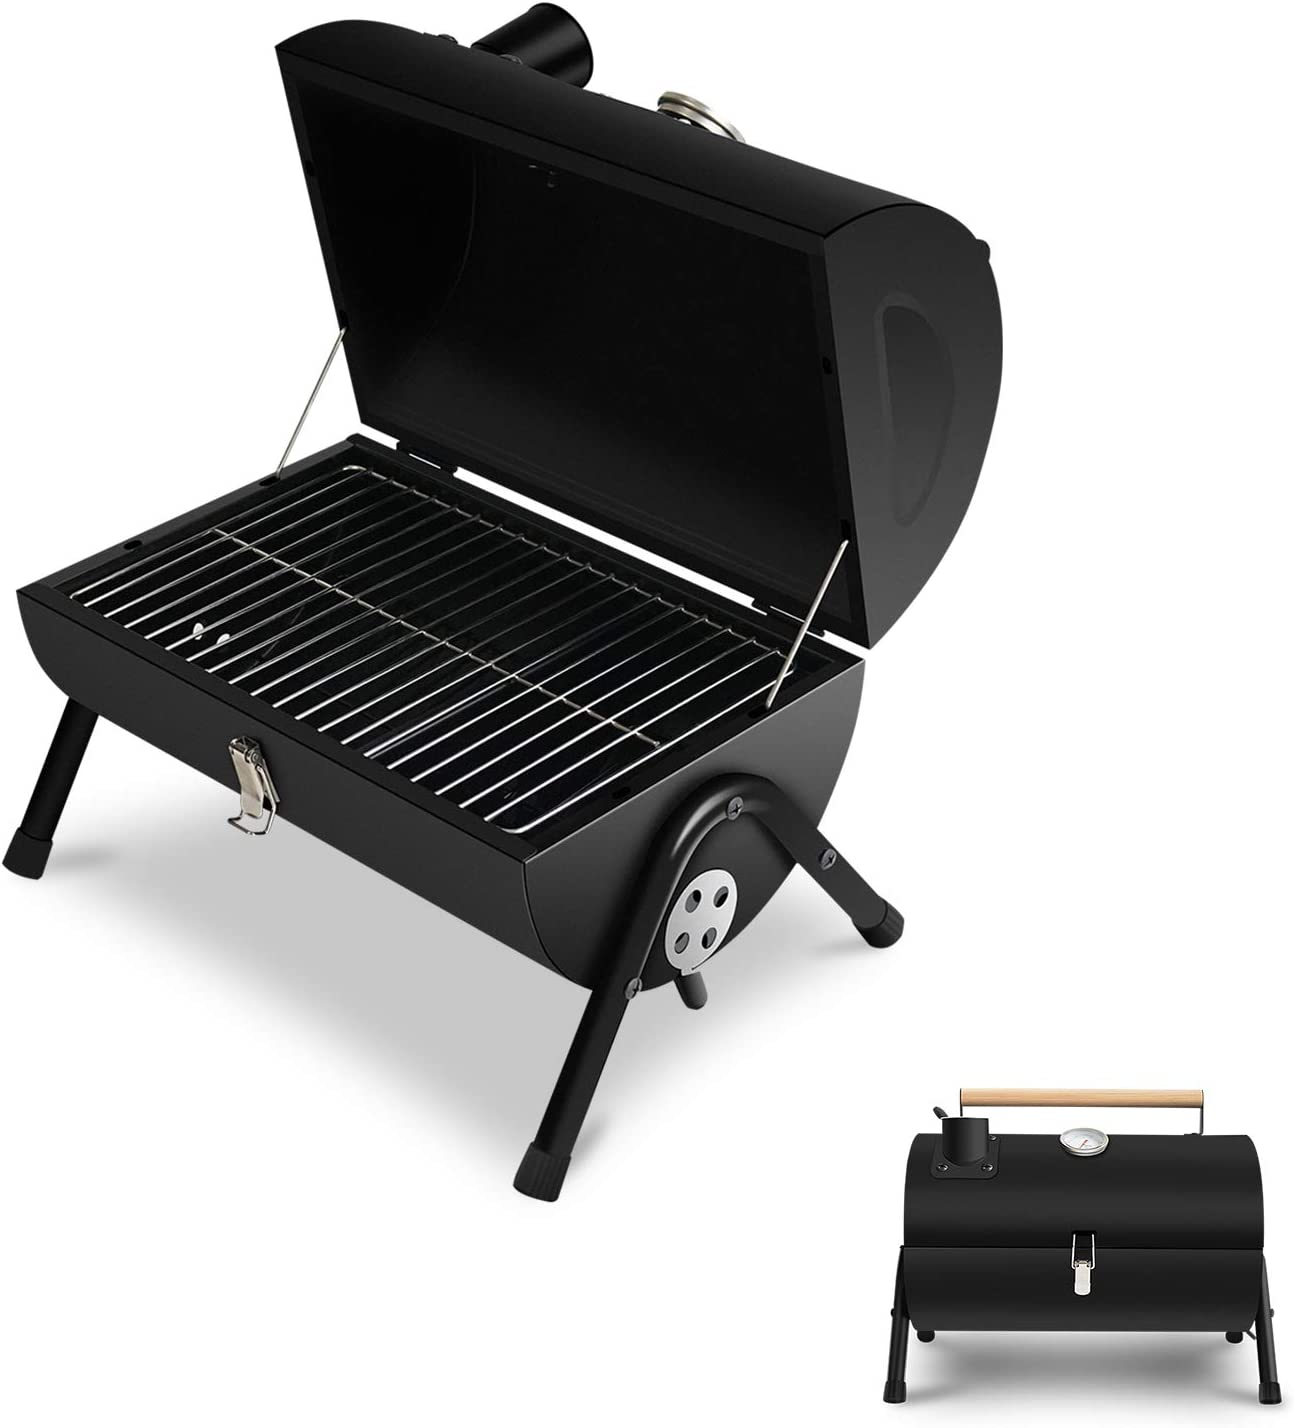 Camping and Picnic Black JJ JUJIN Charcoal Grill Portable BBQ Grill Foldable Barbecue Grills for Outdoor Cooking